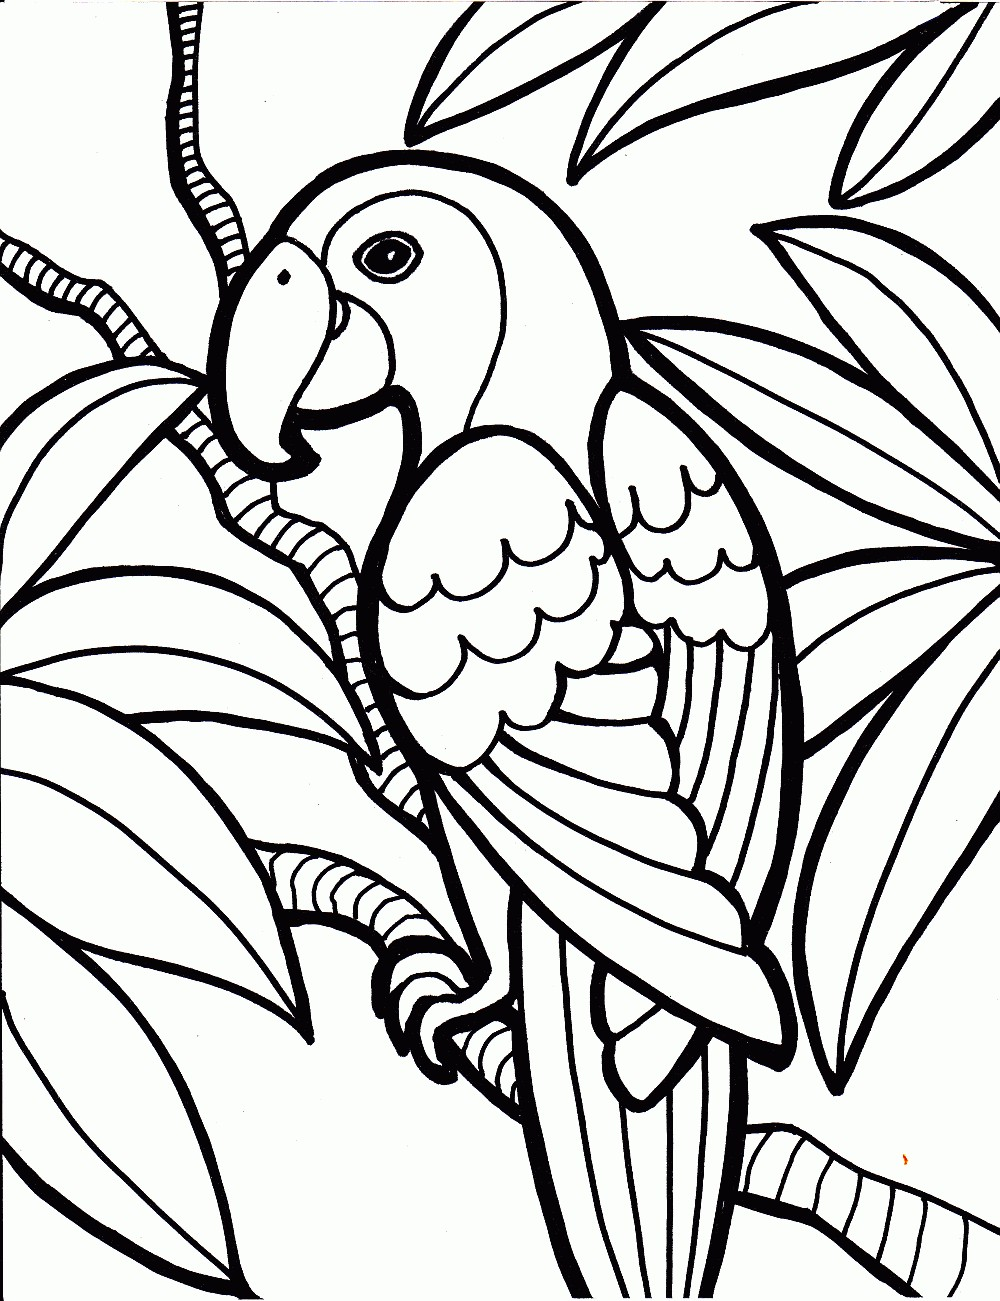 parrot birds coloring page - Cloring Sheets